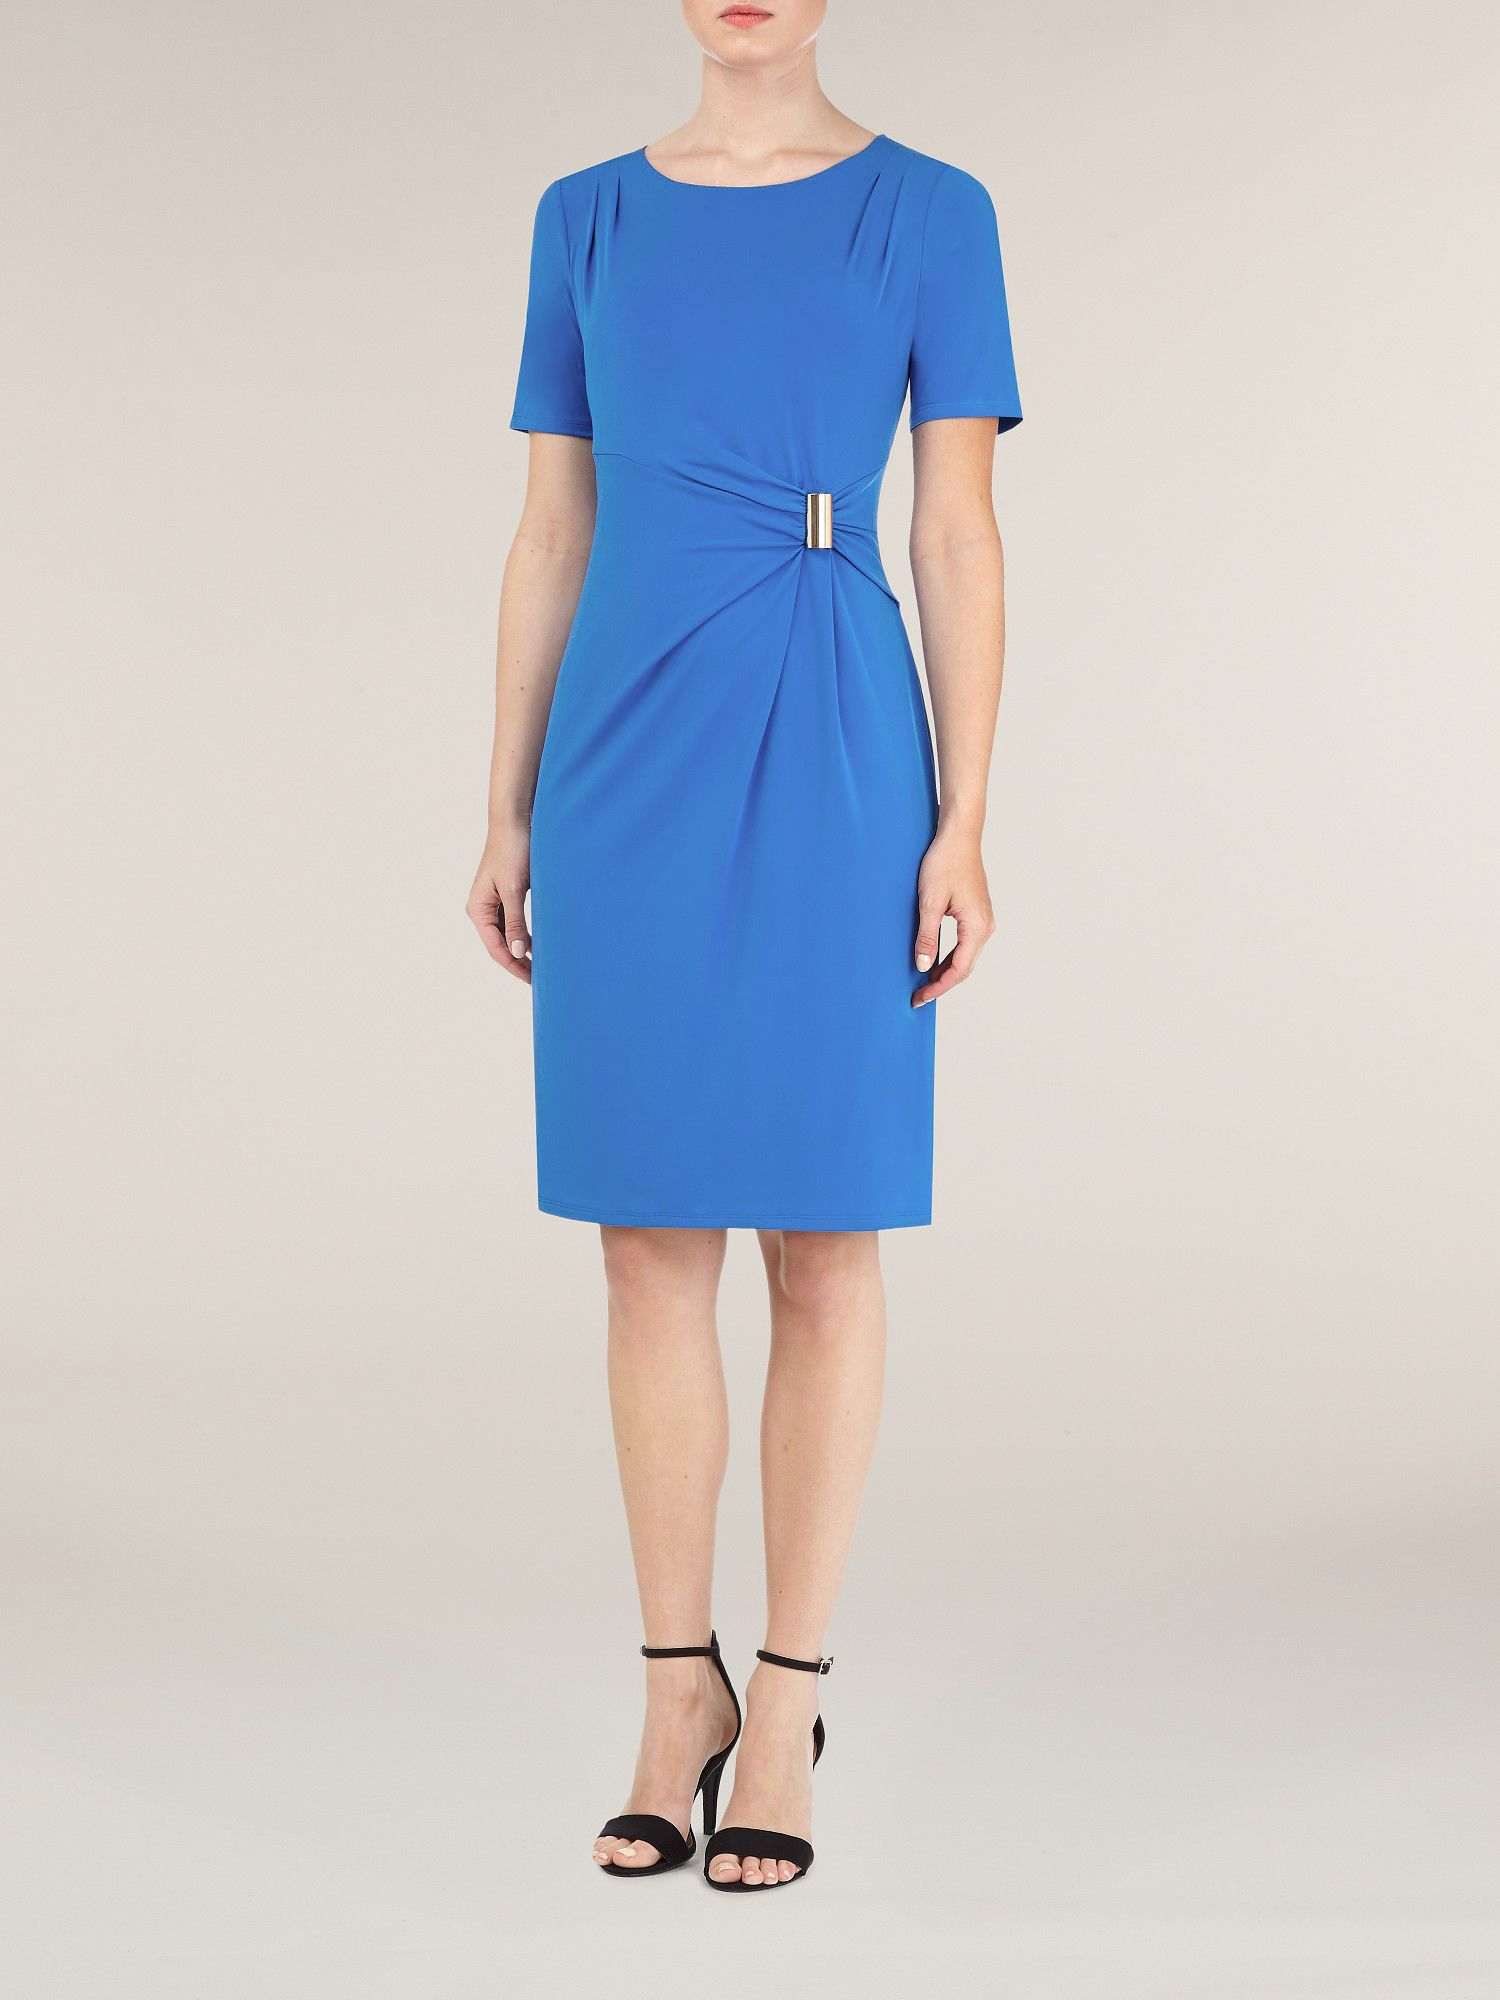 Marine blue jersey dress